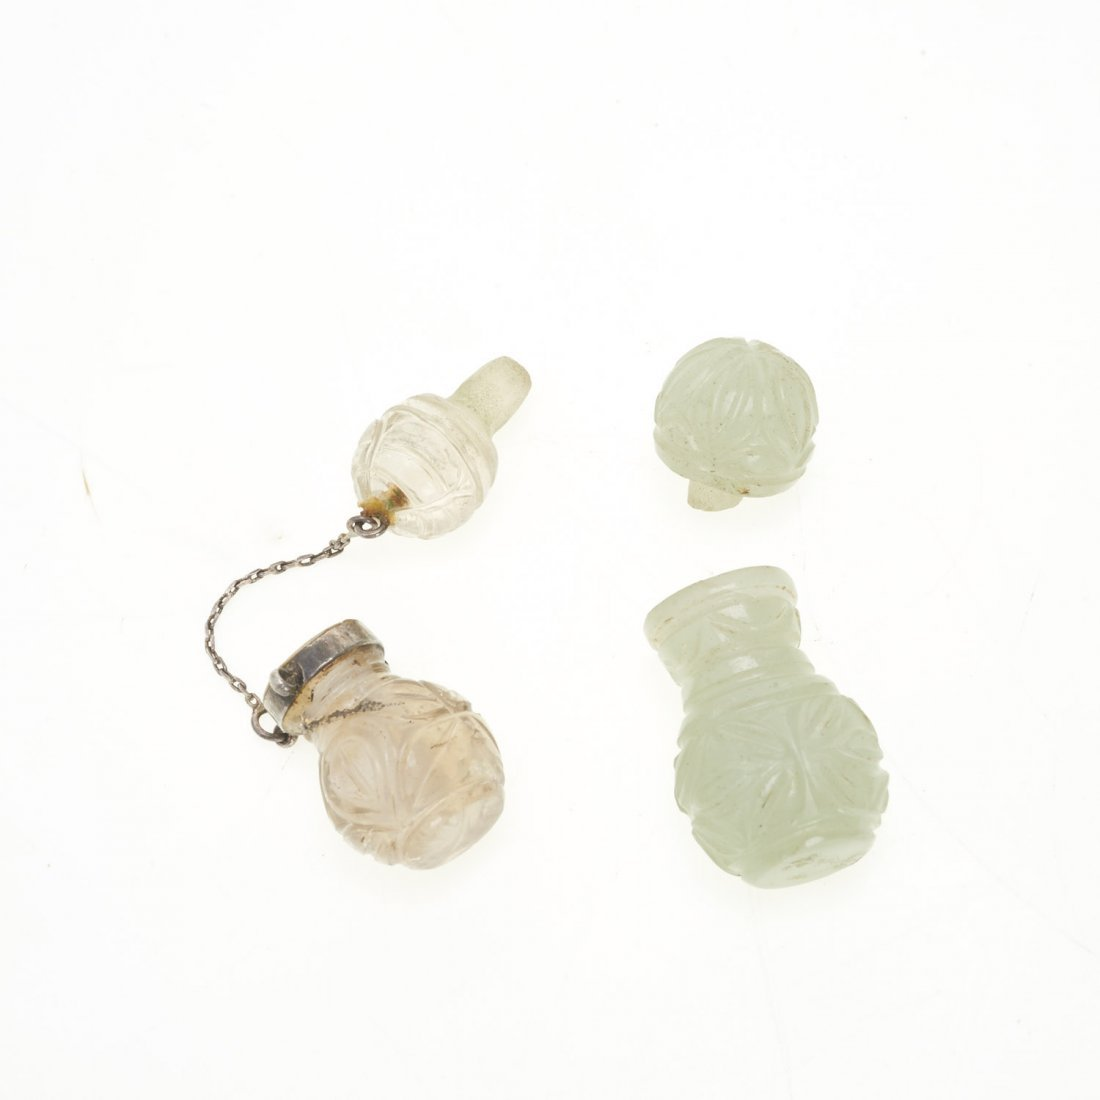 (2) Antique Chinese jade and rock crystal perfumes - 5